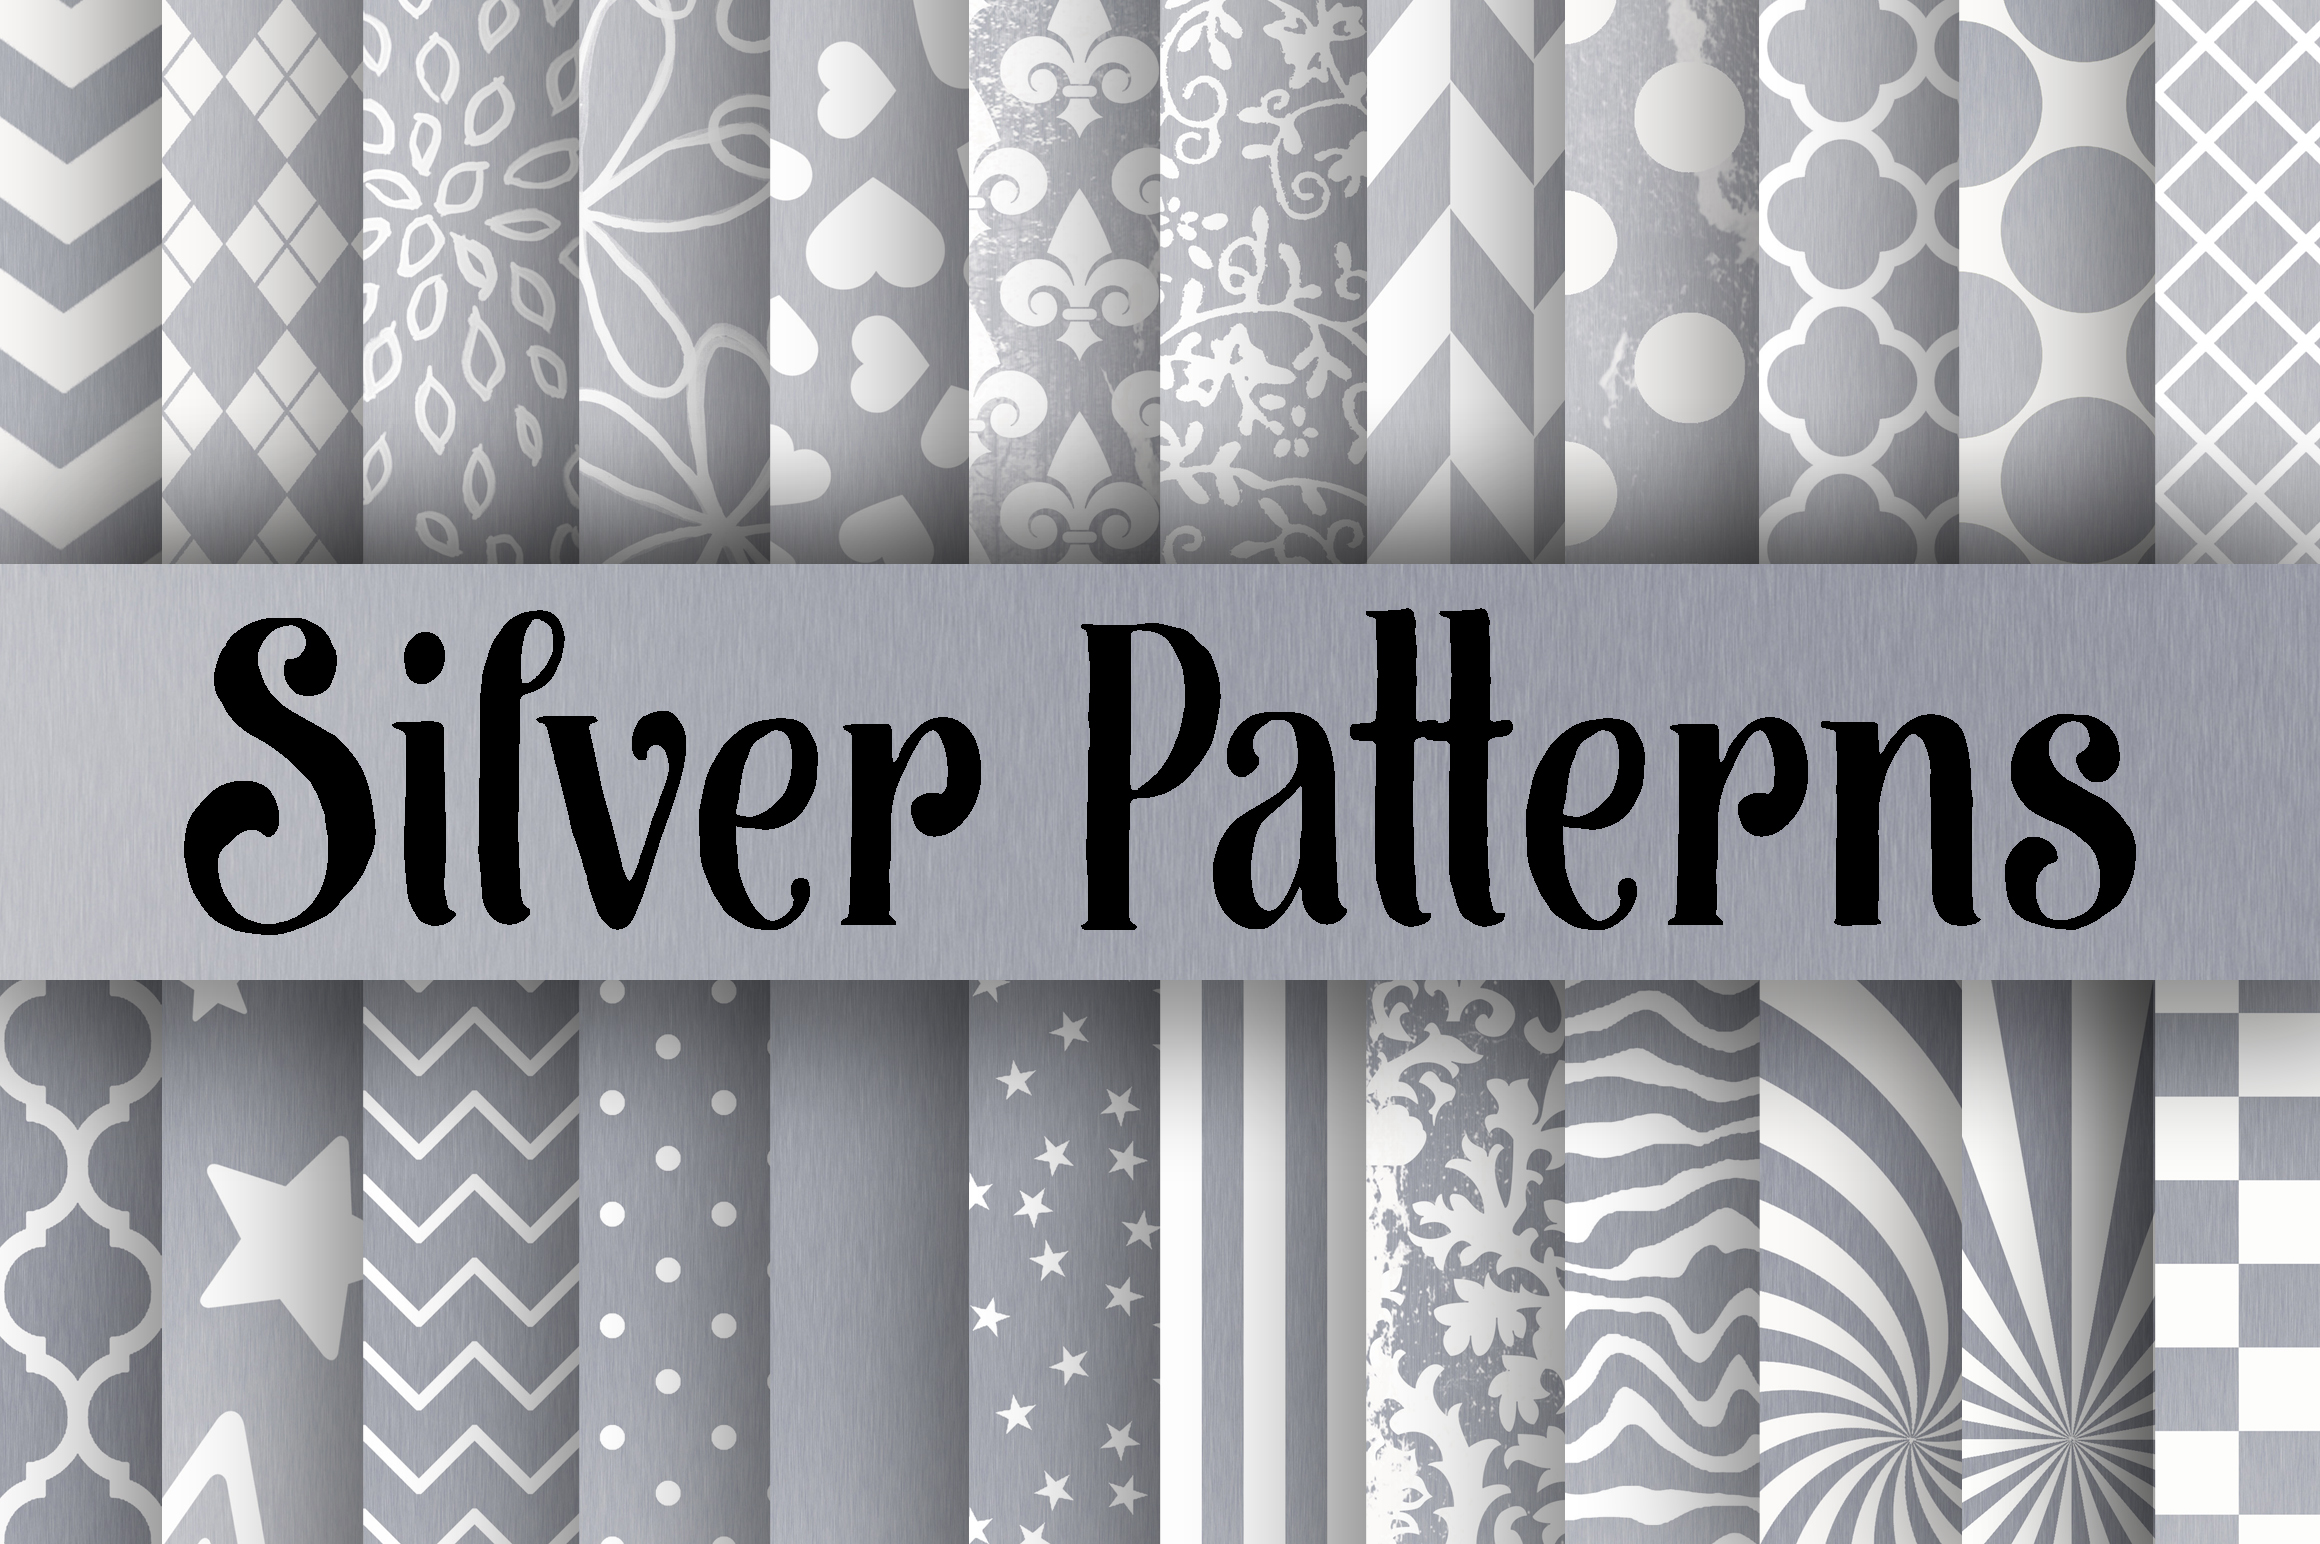 Silver Patterns Digital Paper Graphic Backgrounds By oldmarketdesigns